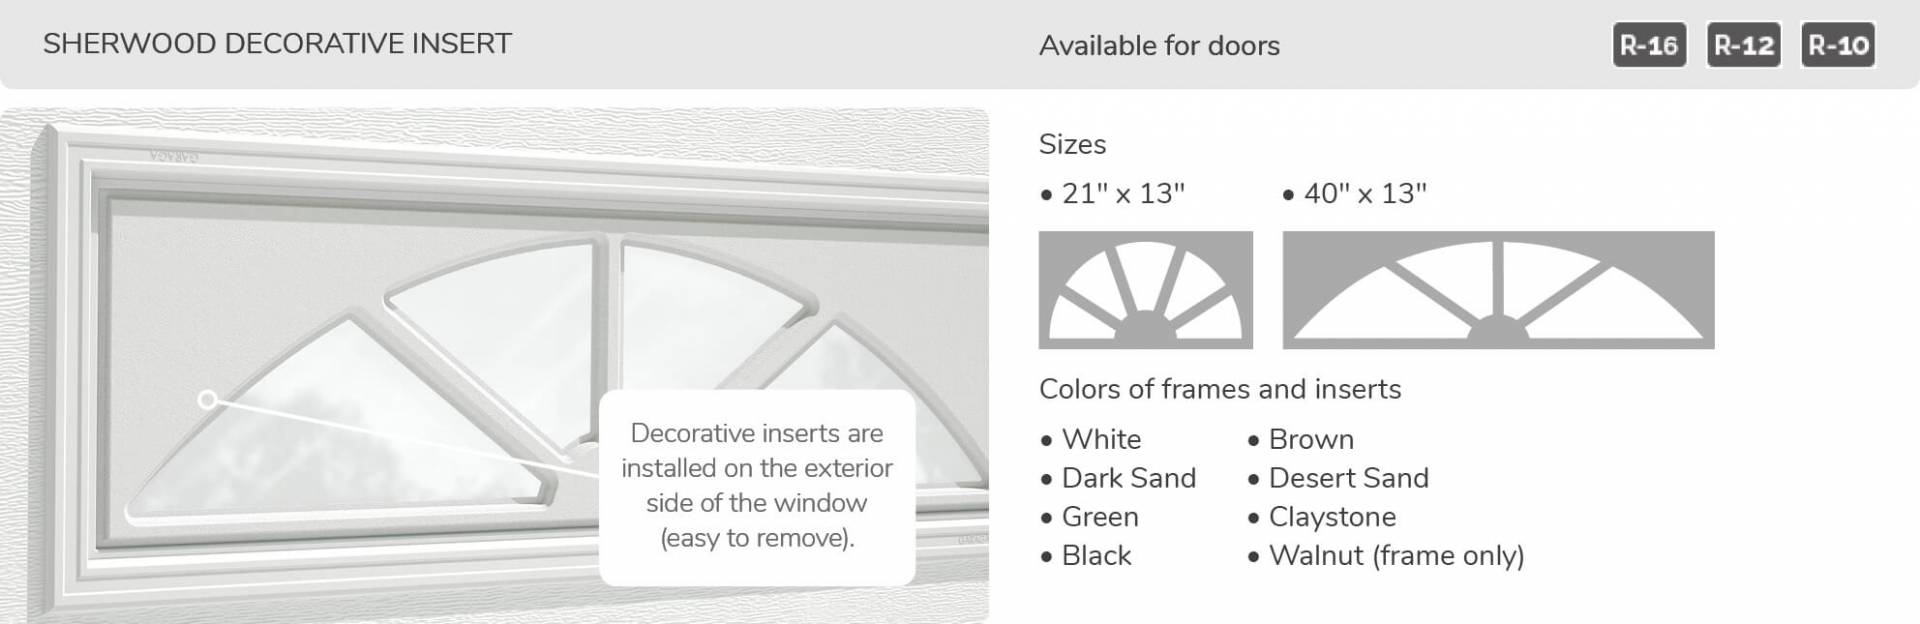 Sherwood Decorative Inserts, 21' x 13' and 40' x 13', available for doors R-16, R-12, R-10